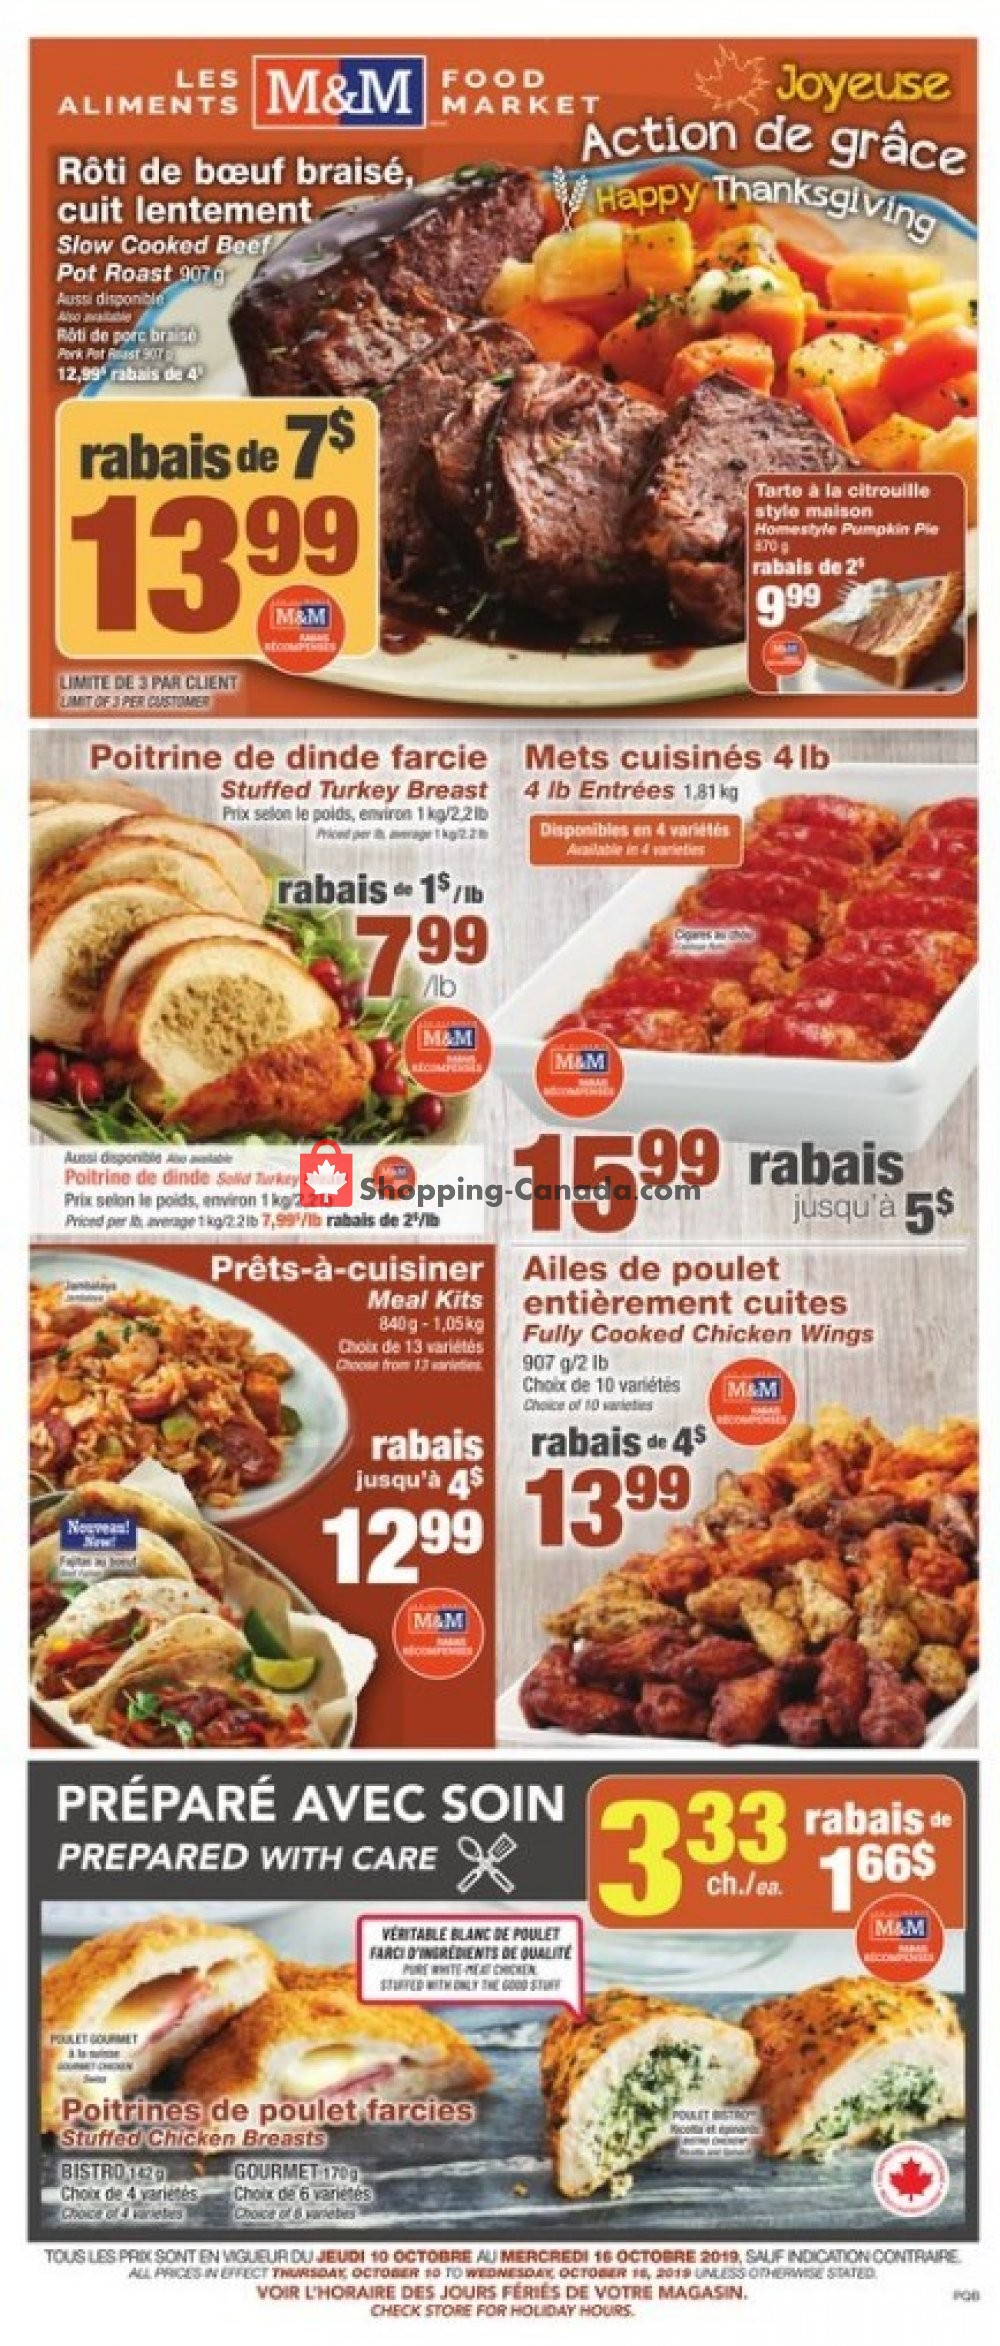 Flyer M&M Food Market Canada - from Thursday October 10, 2019 to Wednesday October 16, 2019